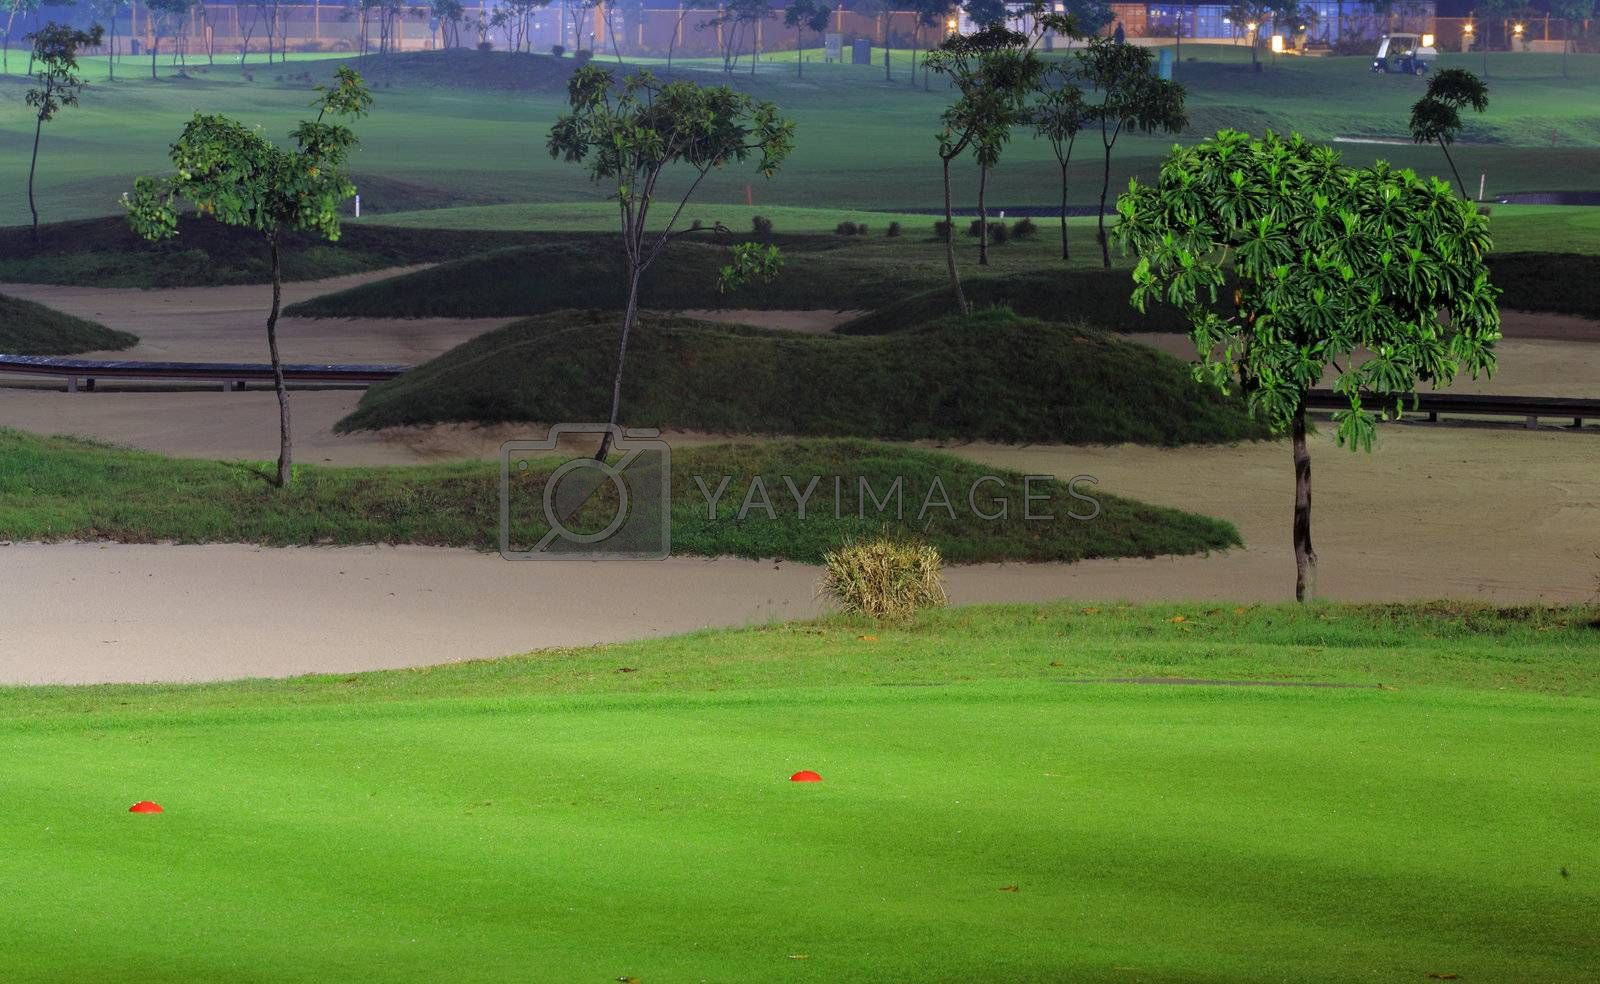 Royalty free image of golf court at night by leungchopan